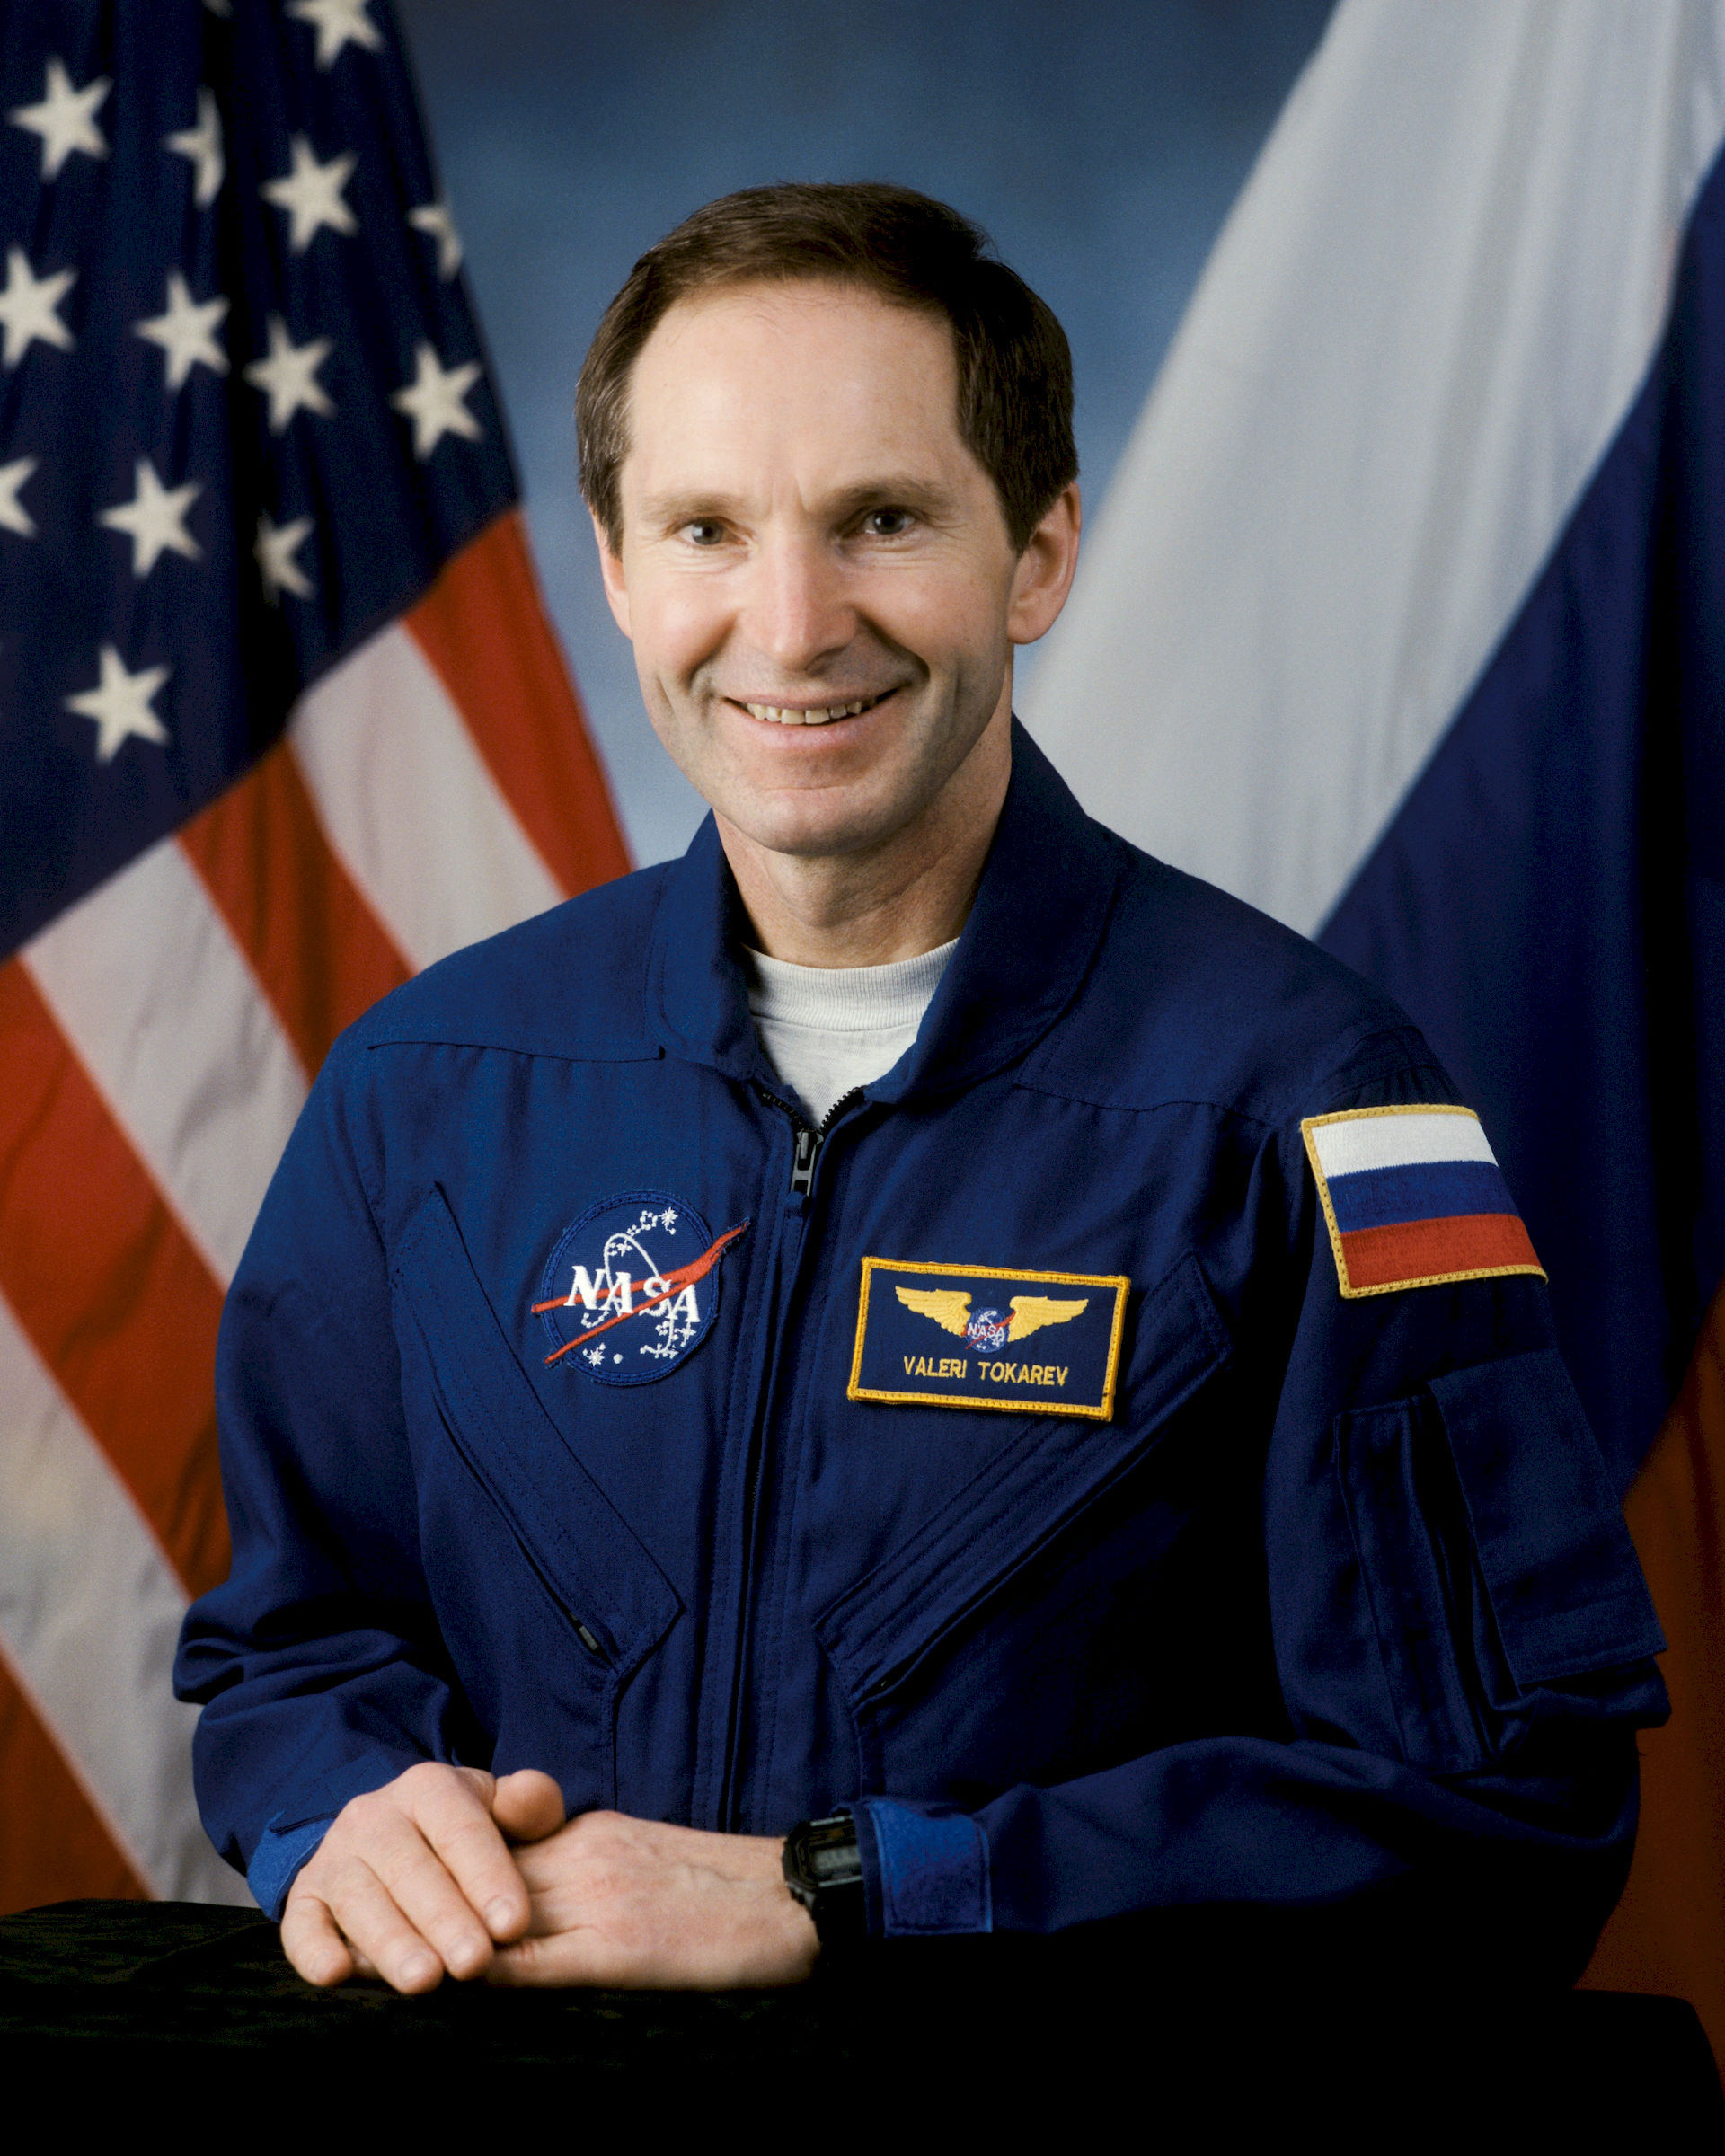 Photo of Valeri Tokarev: Russian cosmonaut